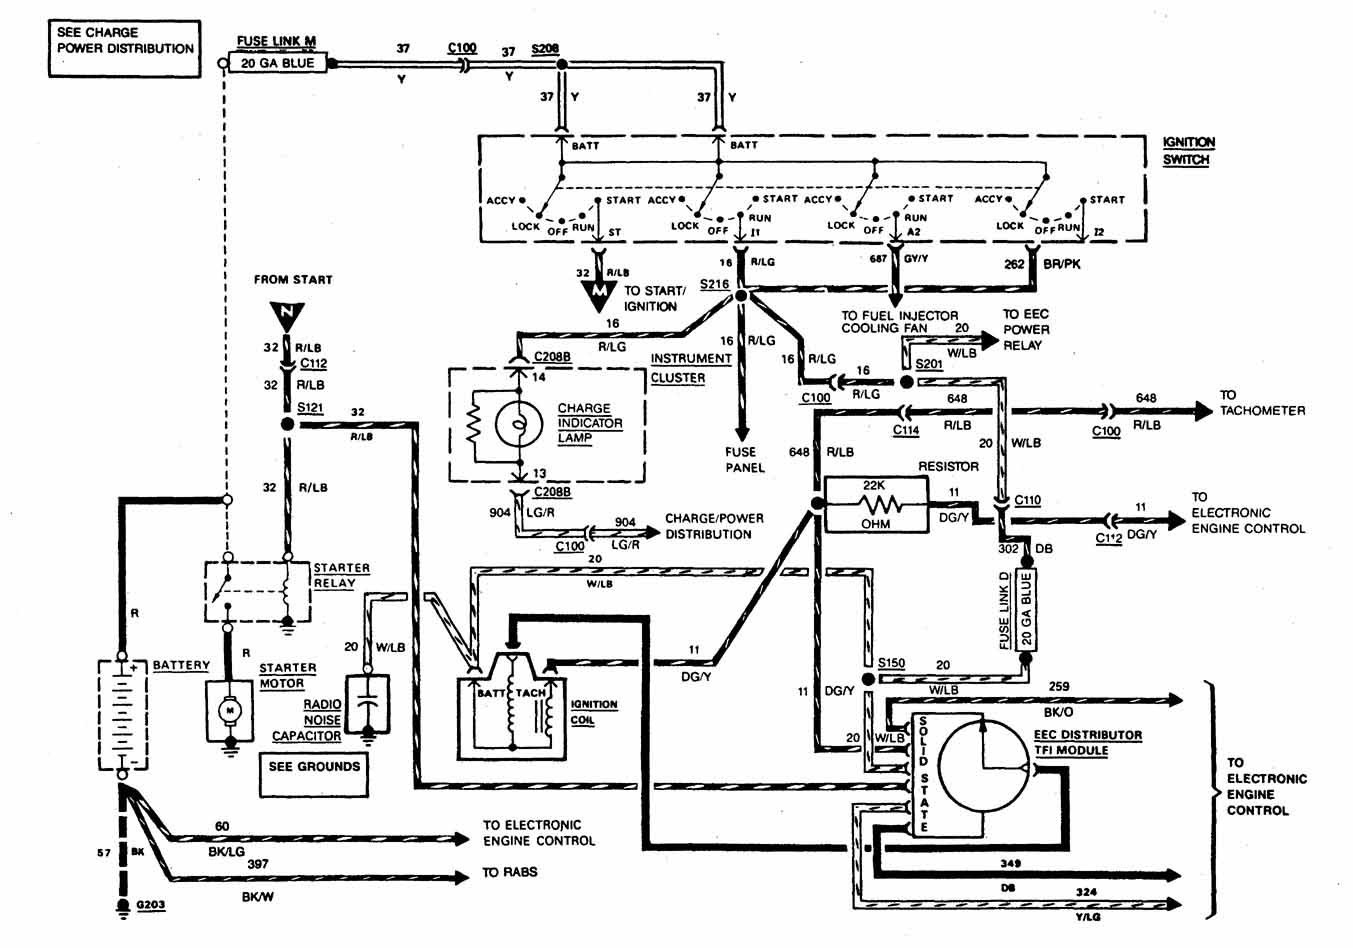 Ford Bronco Starter Solenoid Wiring Diagram Inspirational 89 F250 - Ford F250 Starter Solenoid Wiring Diagram